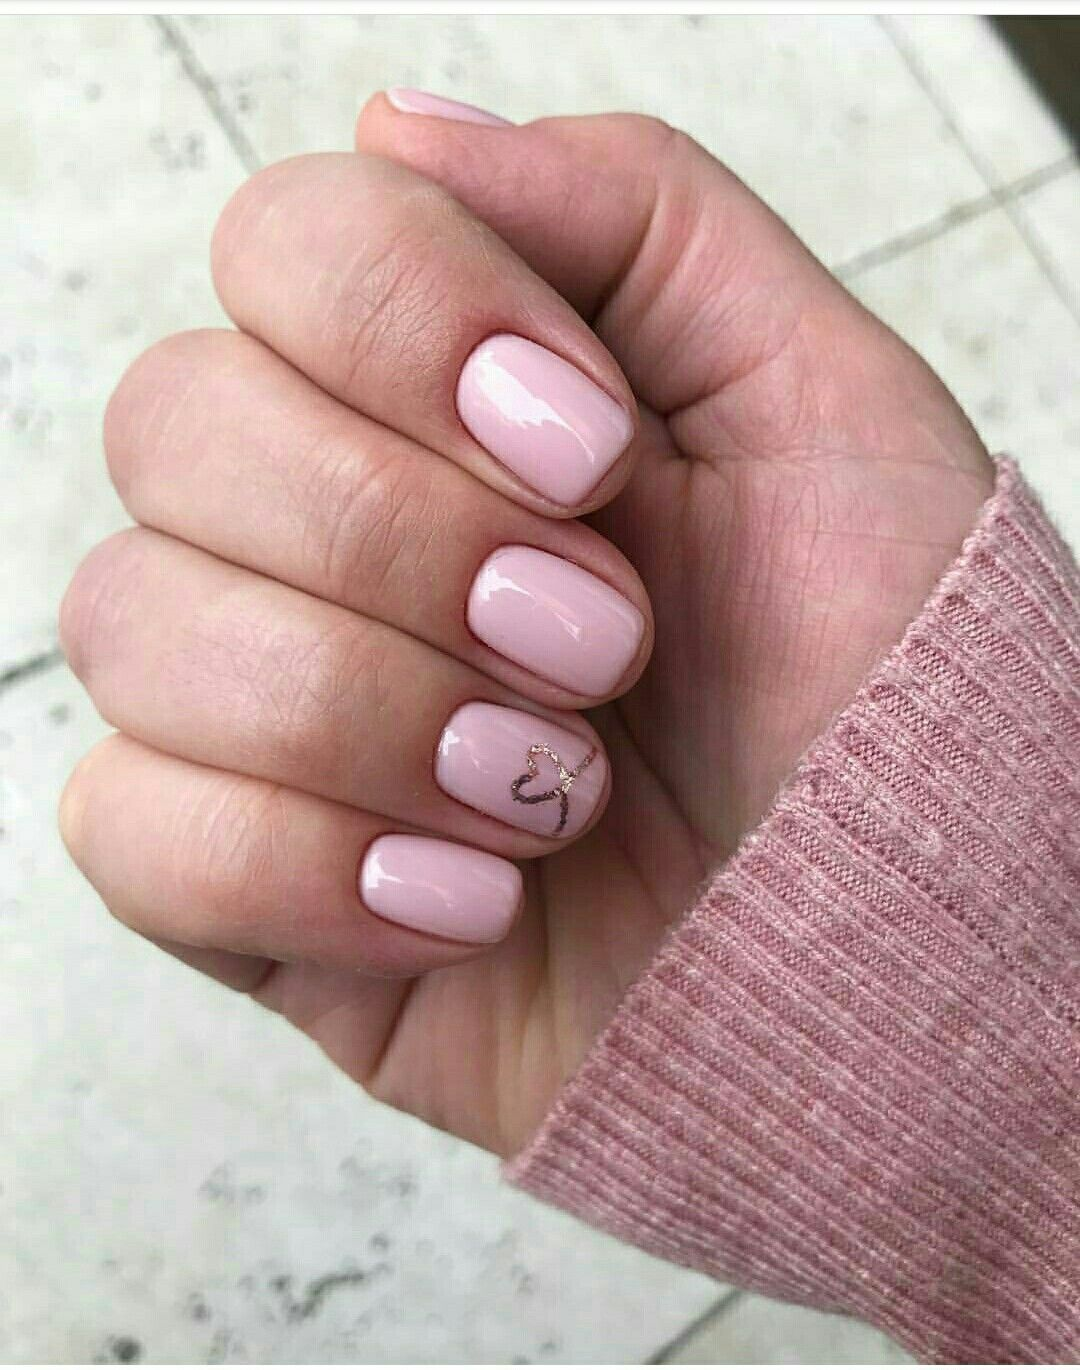 Pale pink nails with a gold heart accent nail nails in